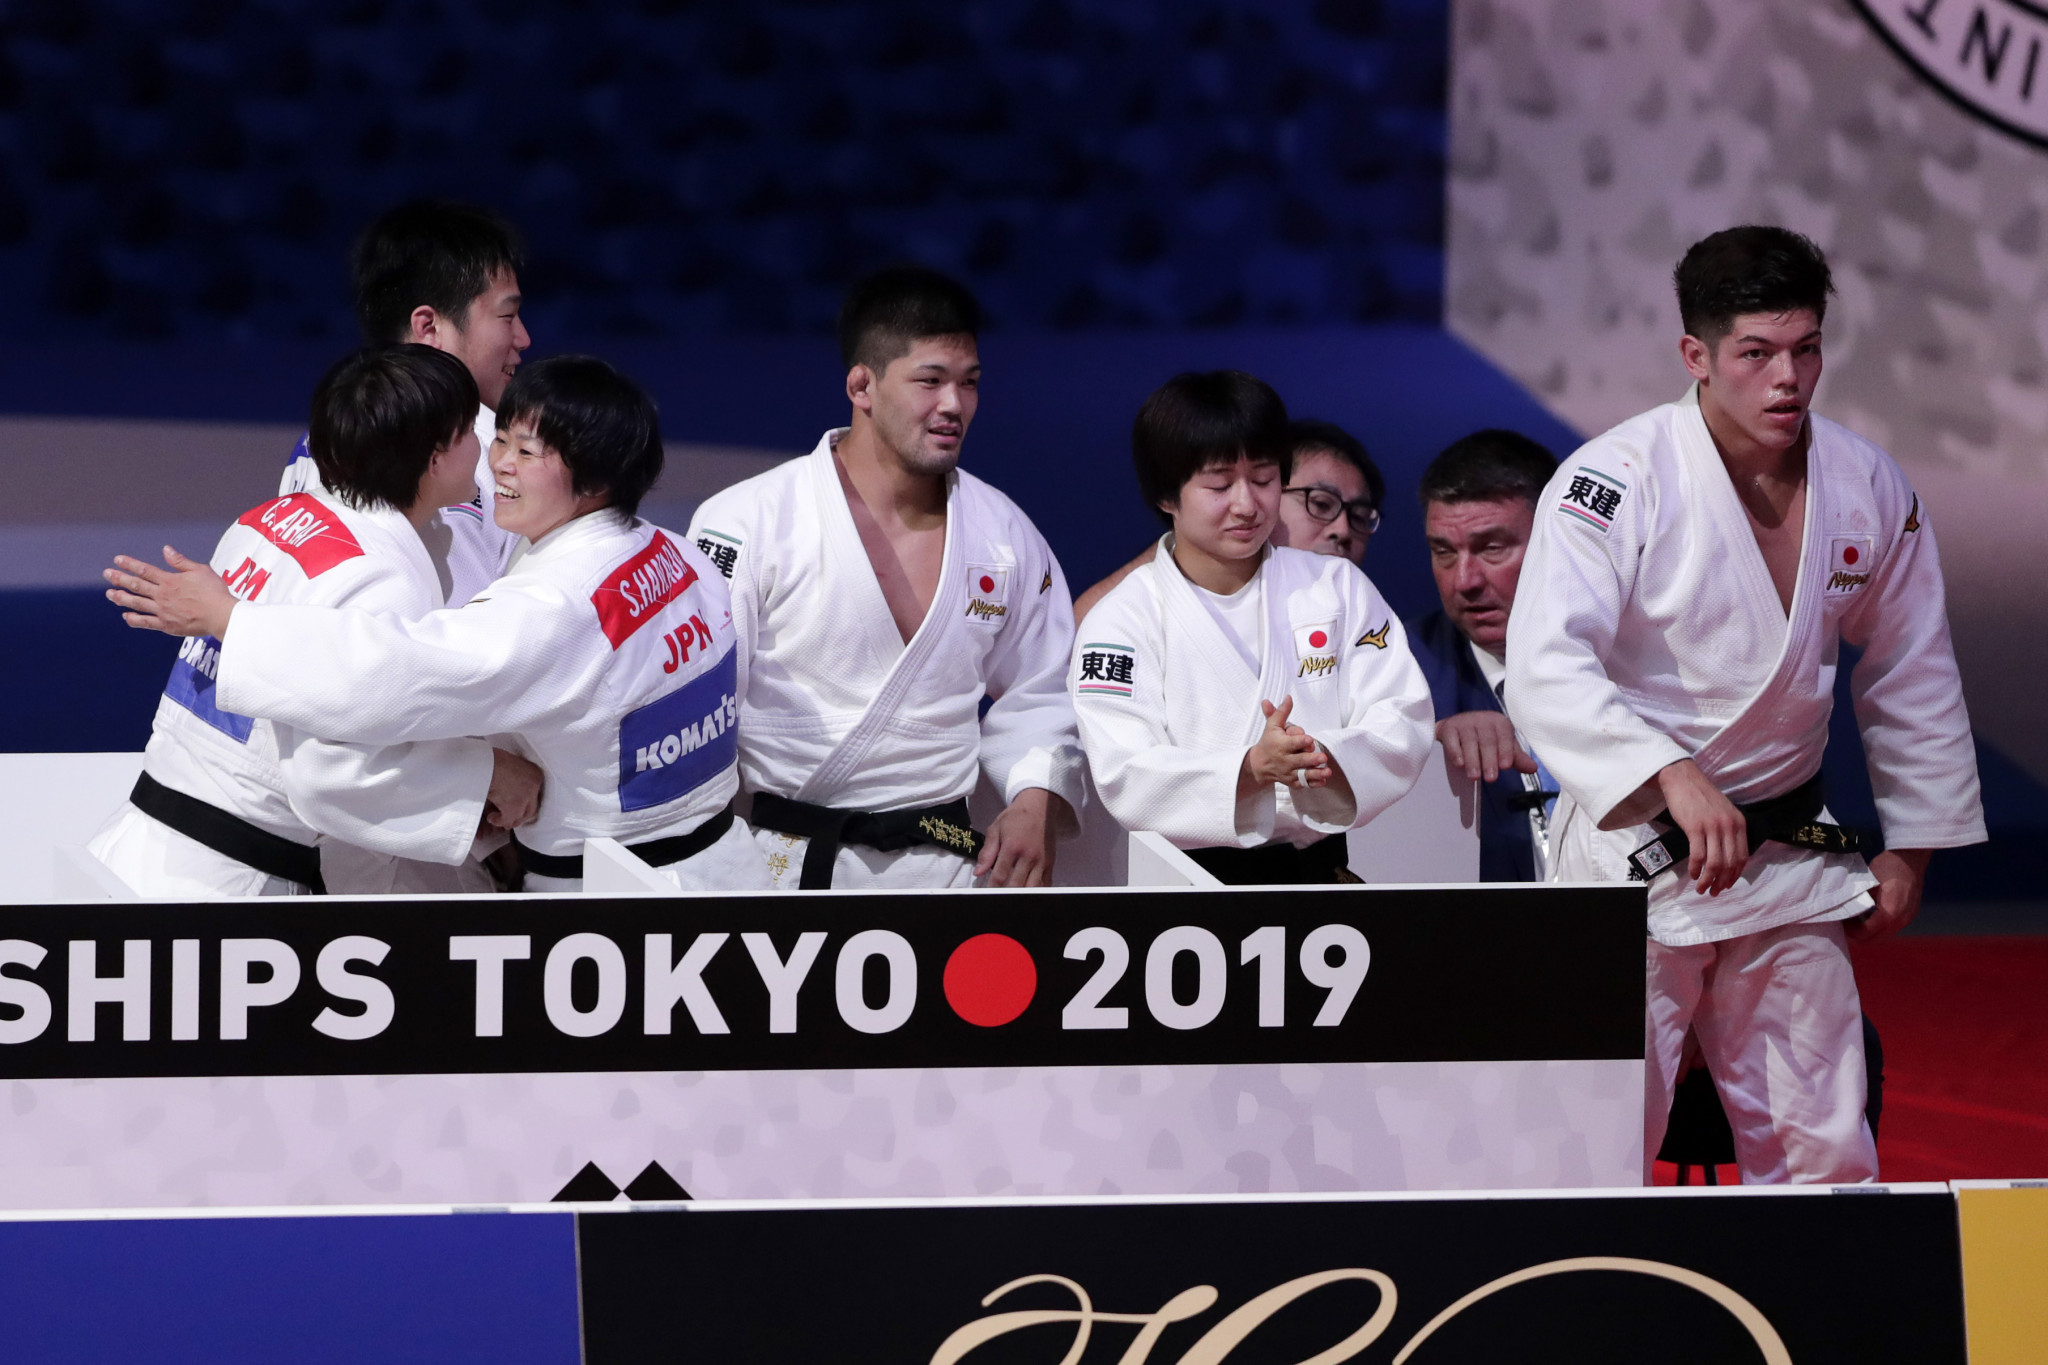 The Japan team celebrate together after claimin a hat-trick of mixed team world golds ©Getty Images